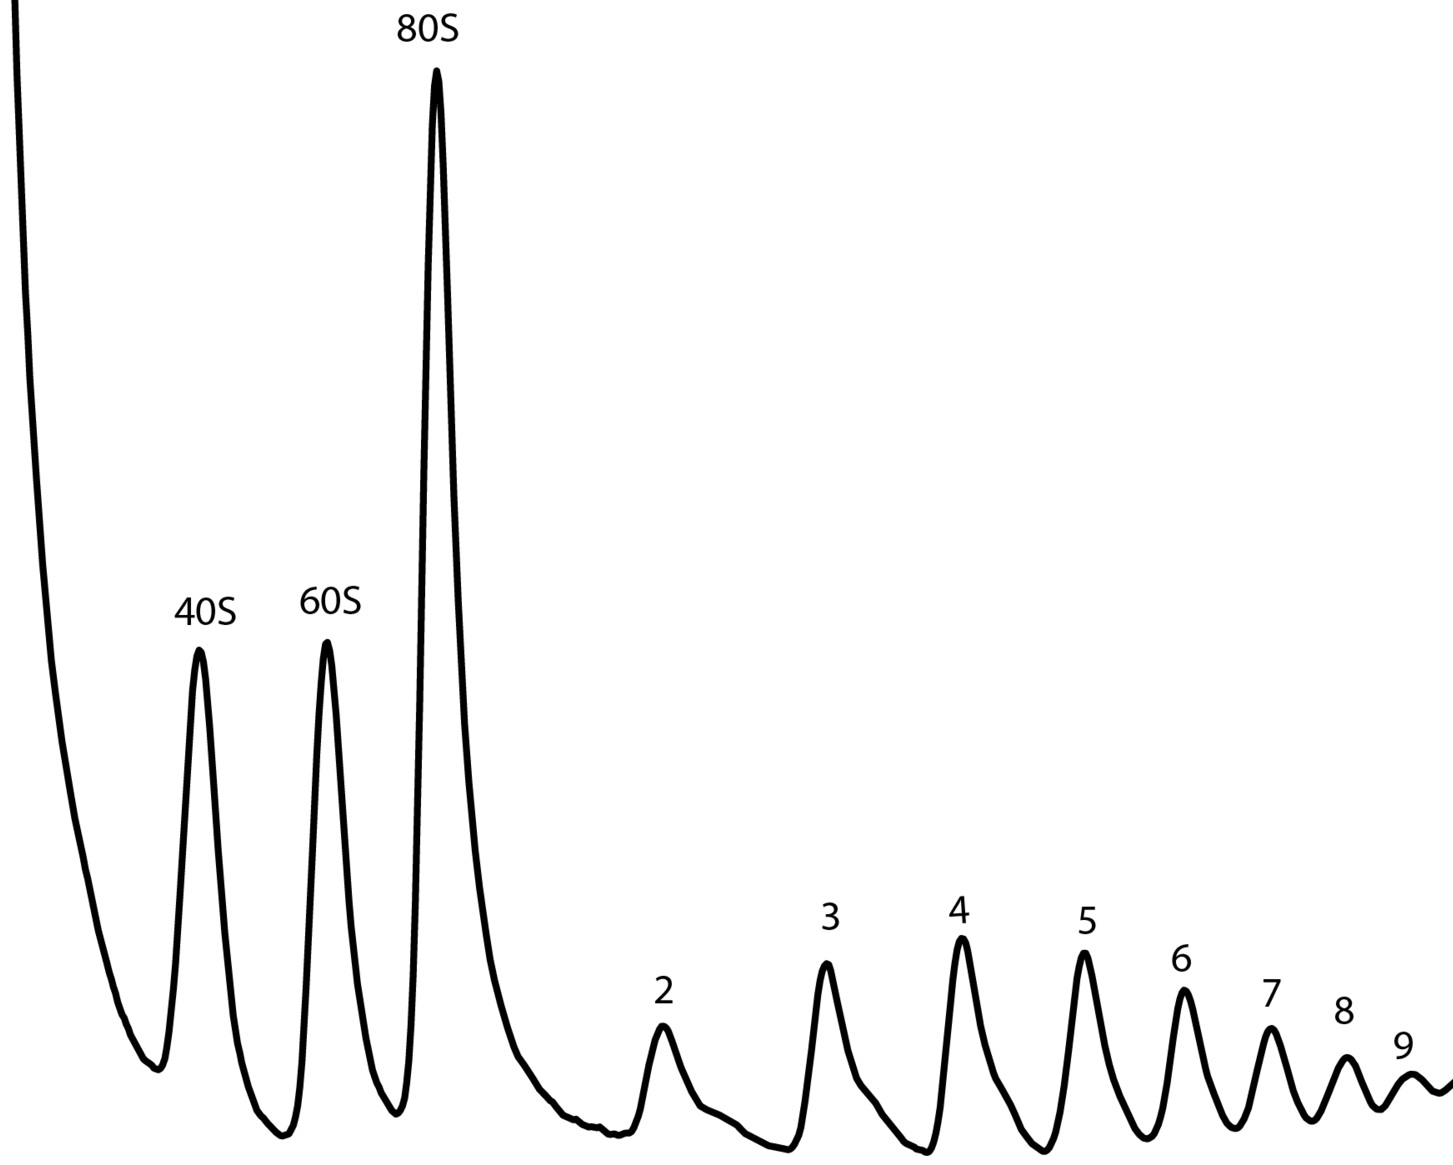 Ribosome fractionation on a sucrose gradient. Number of ribosomes in each peak is indicated. Gradient by Dr. Boris Zinshteyn